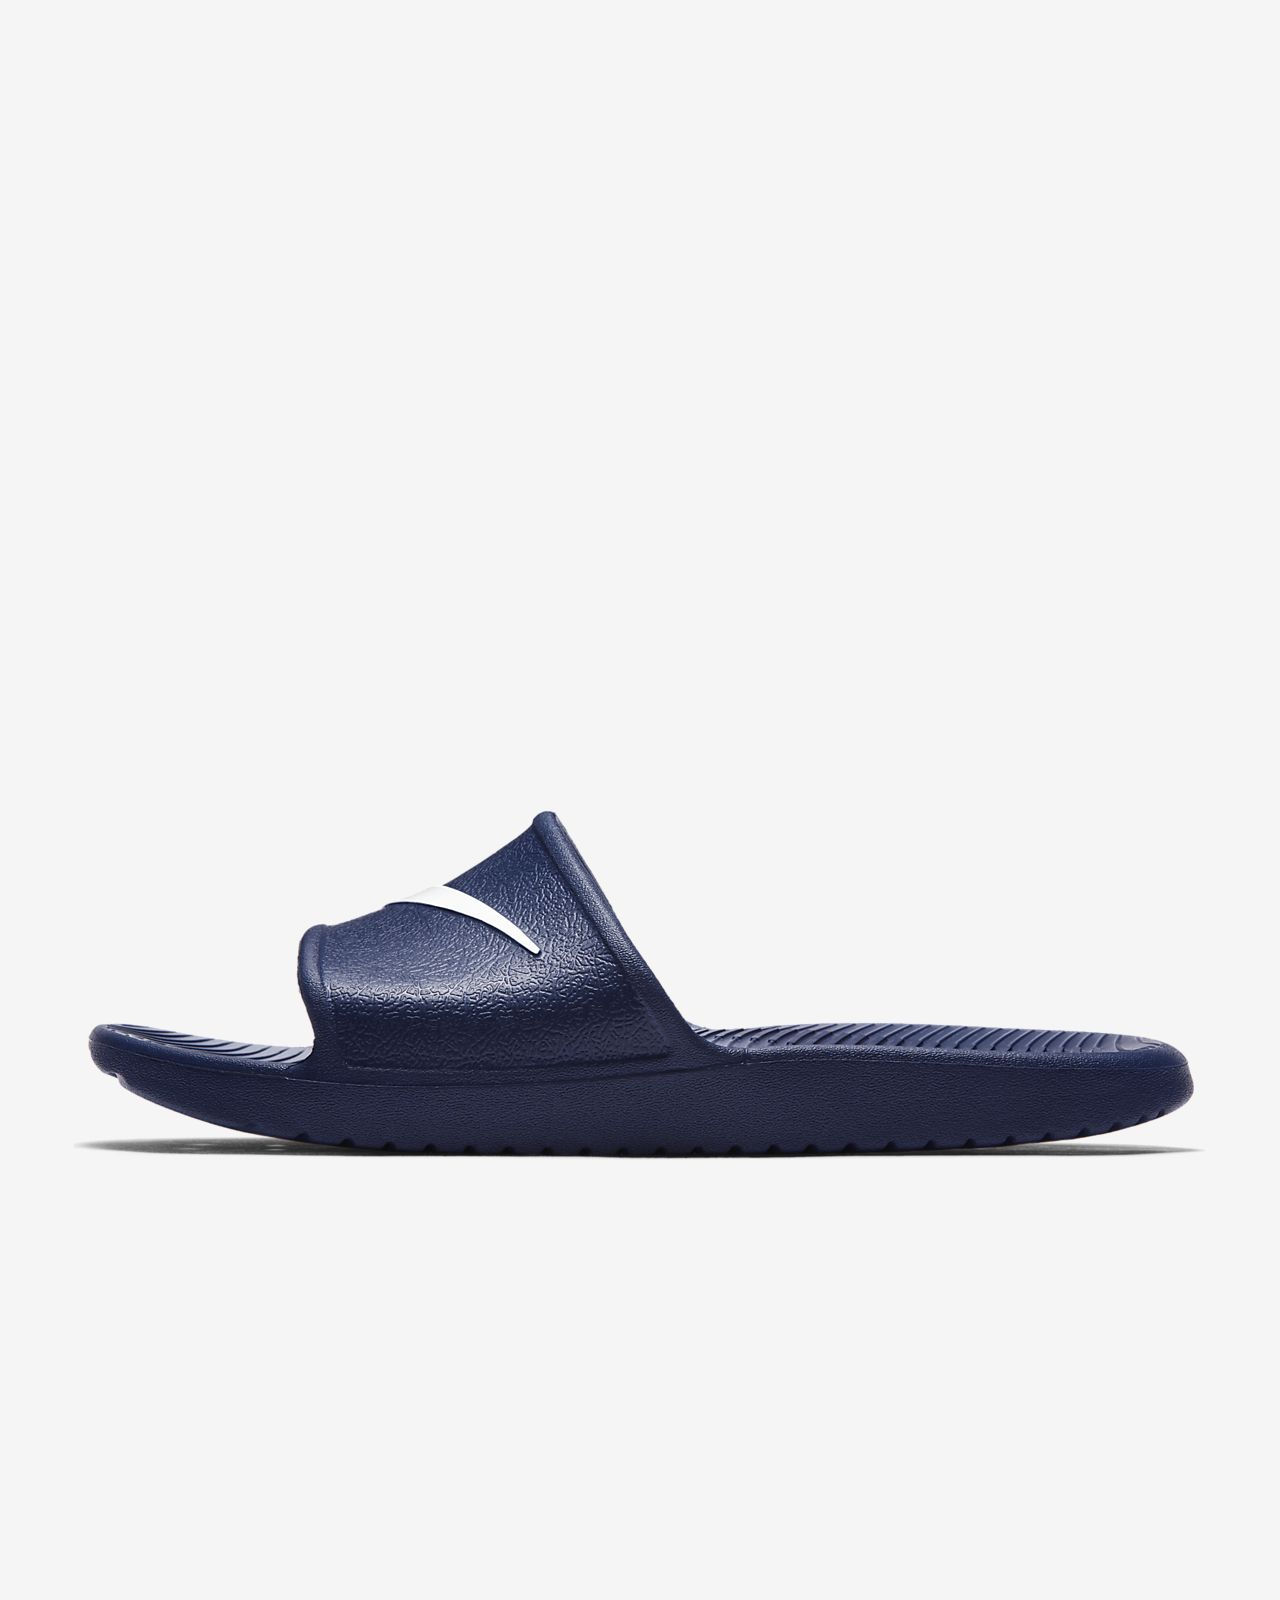 official photos ca9f9 adae3 ... Claquette Nike Kawa Shower pour Homme